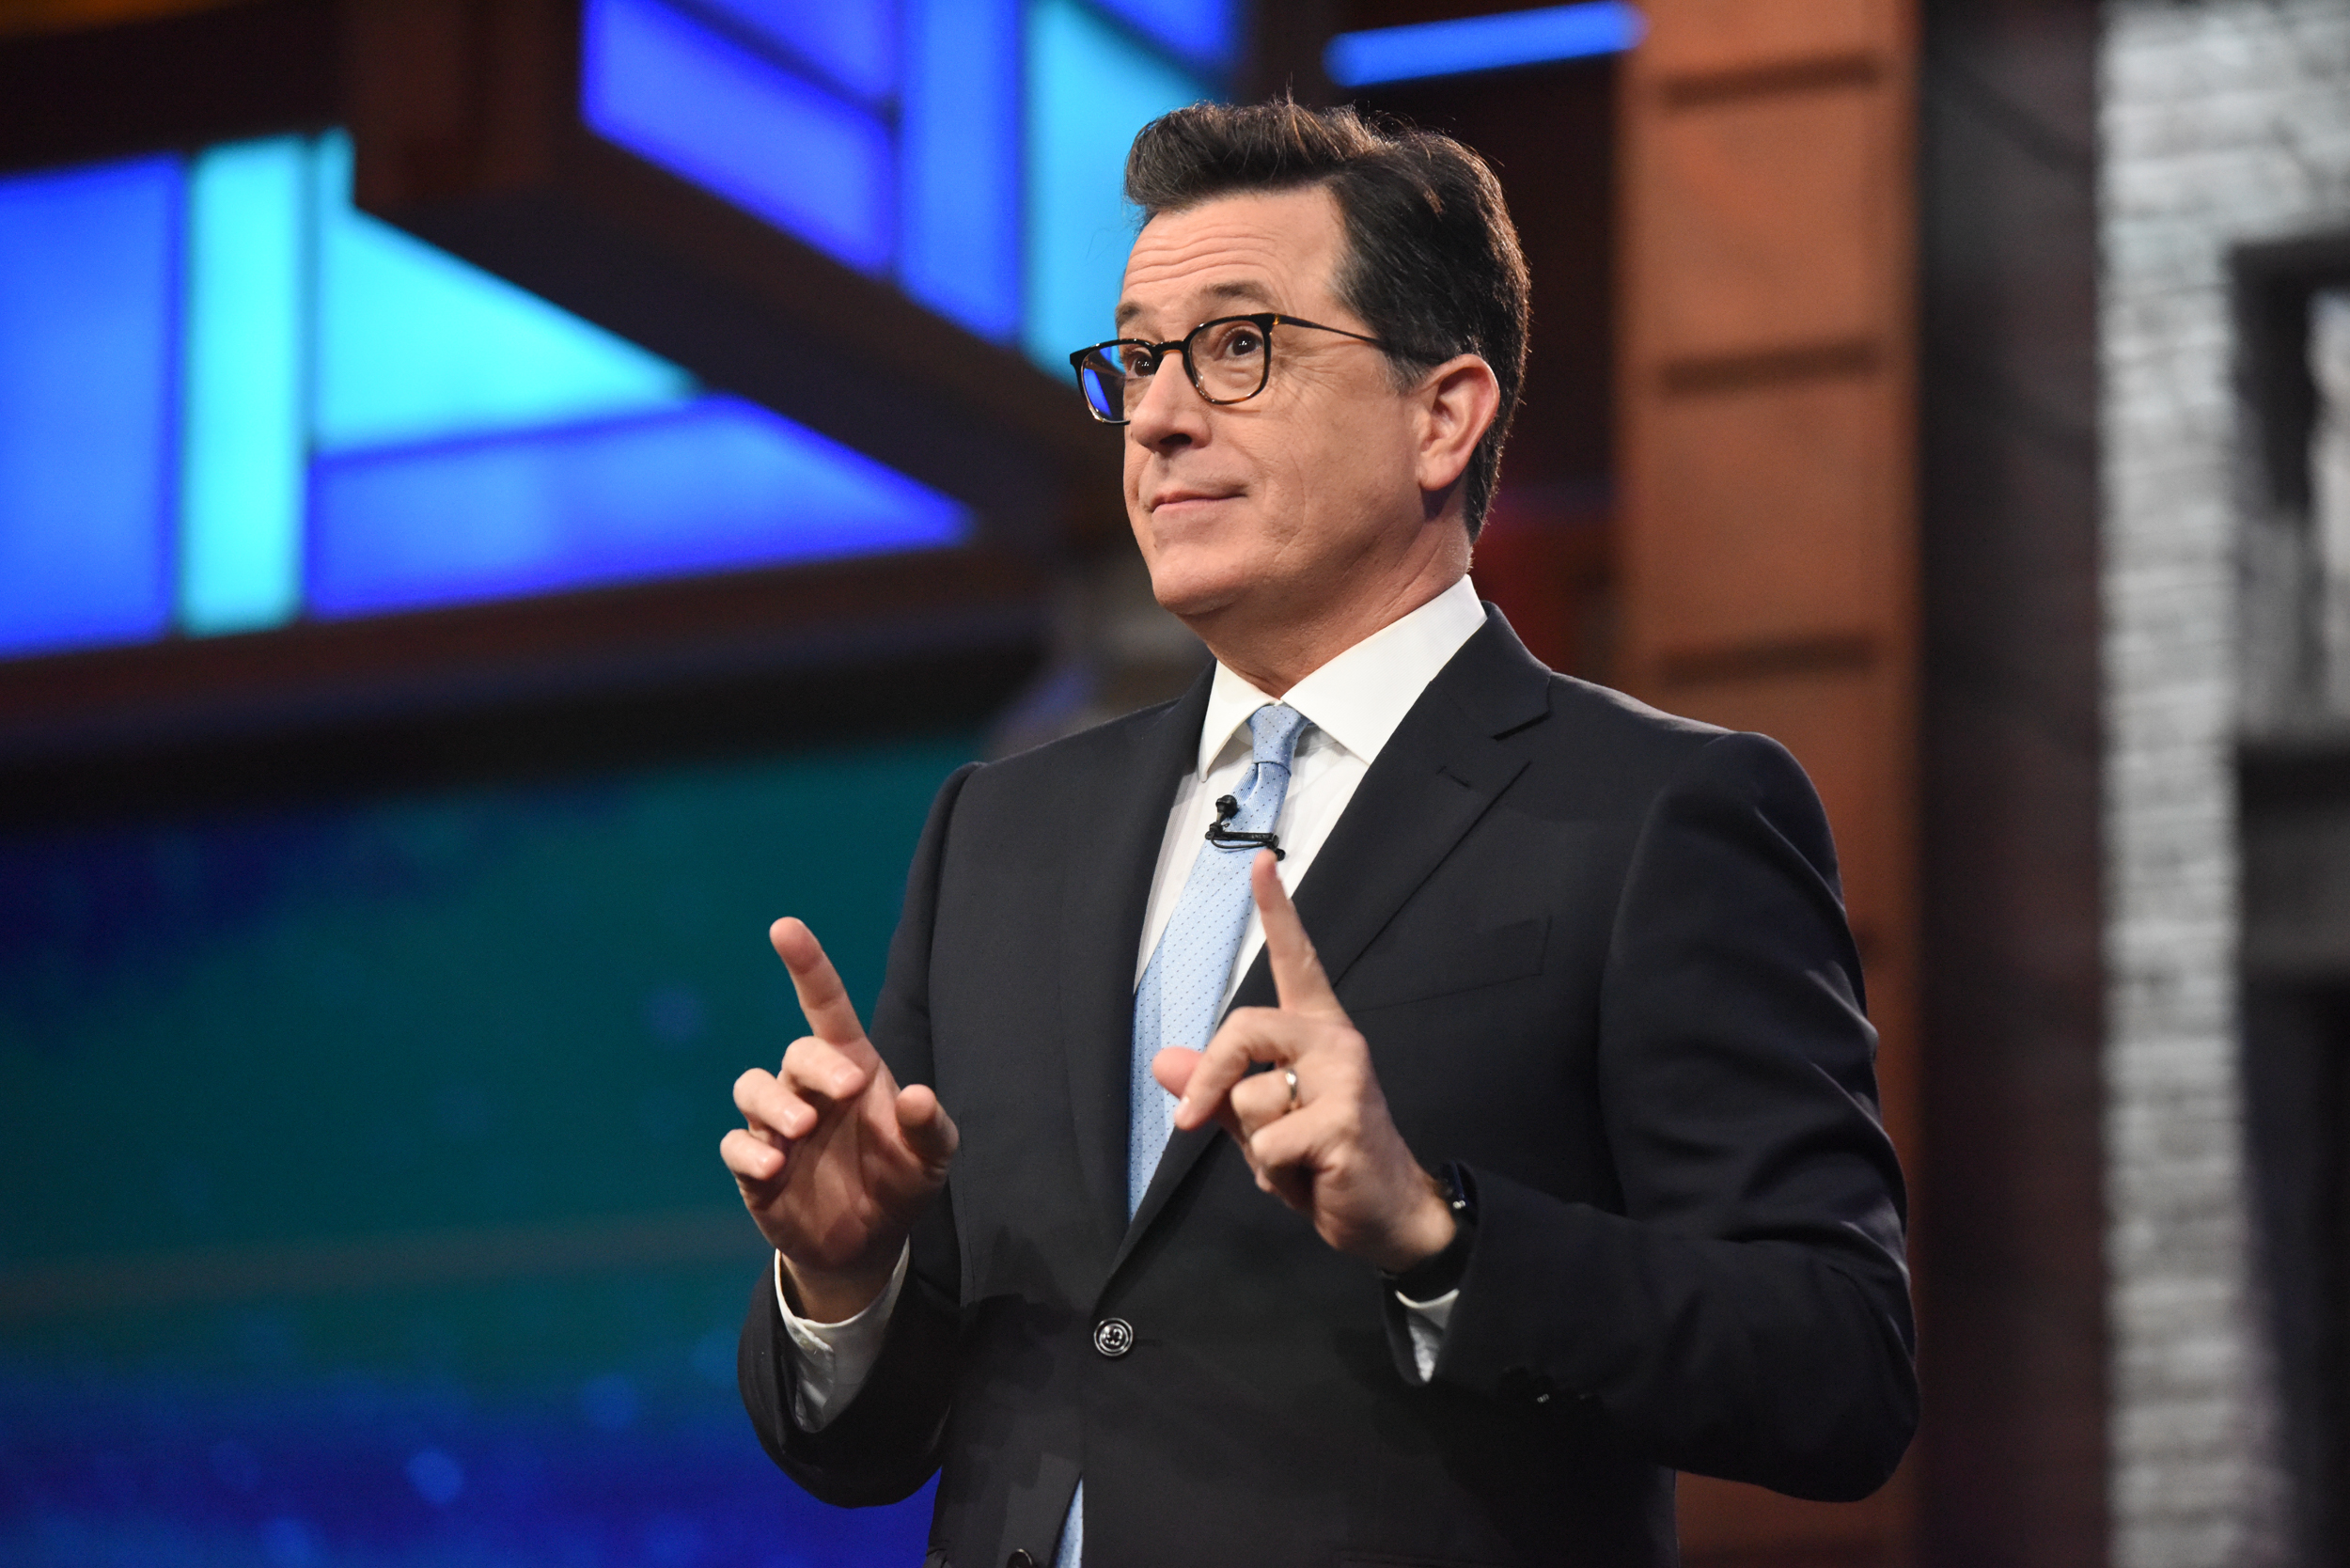 The Late Show with Stephen Colbert during the June 8, 2017 show.